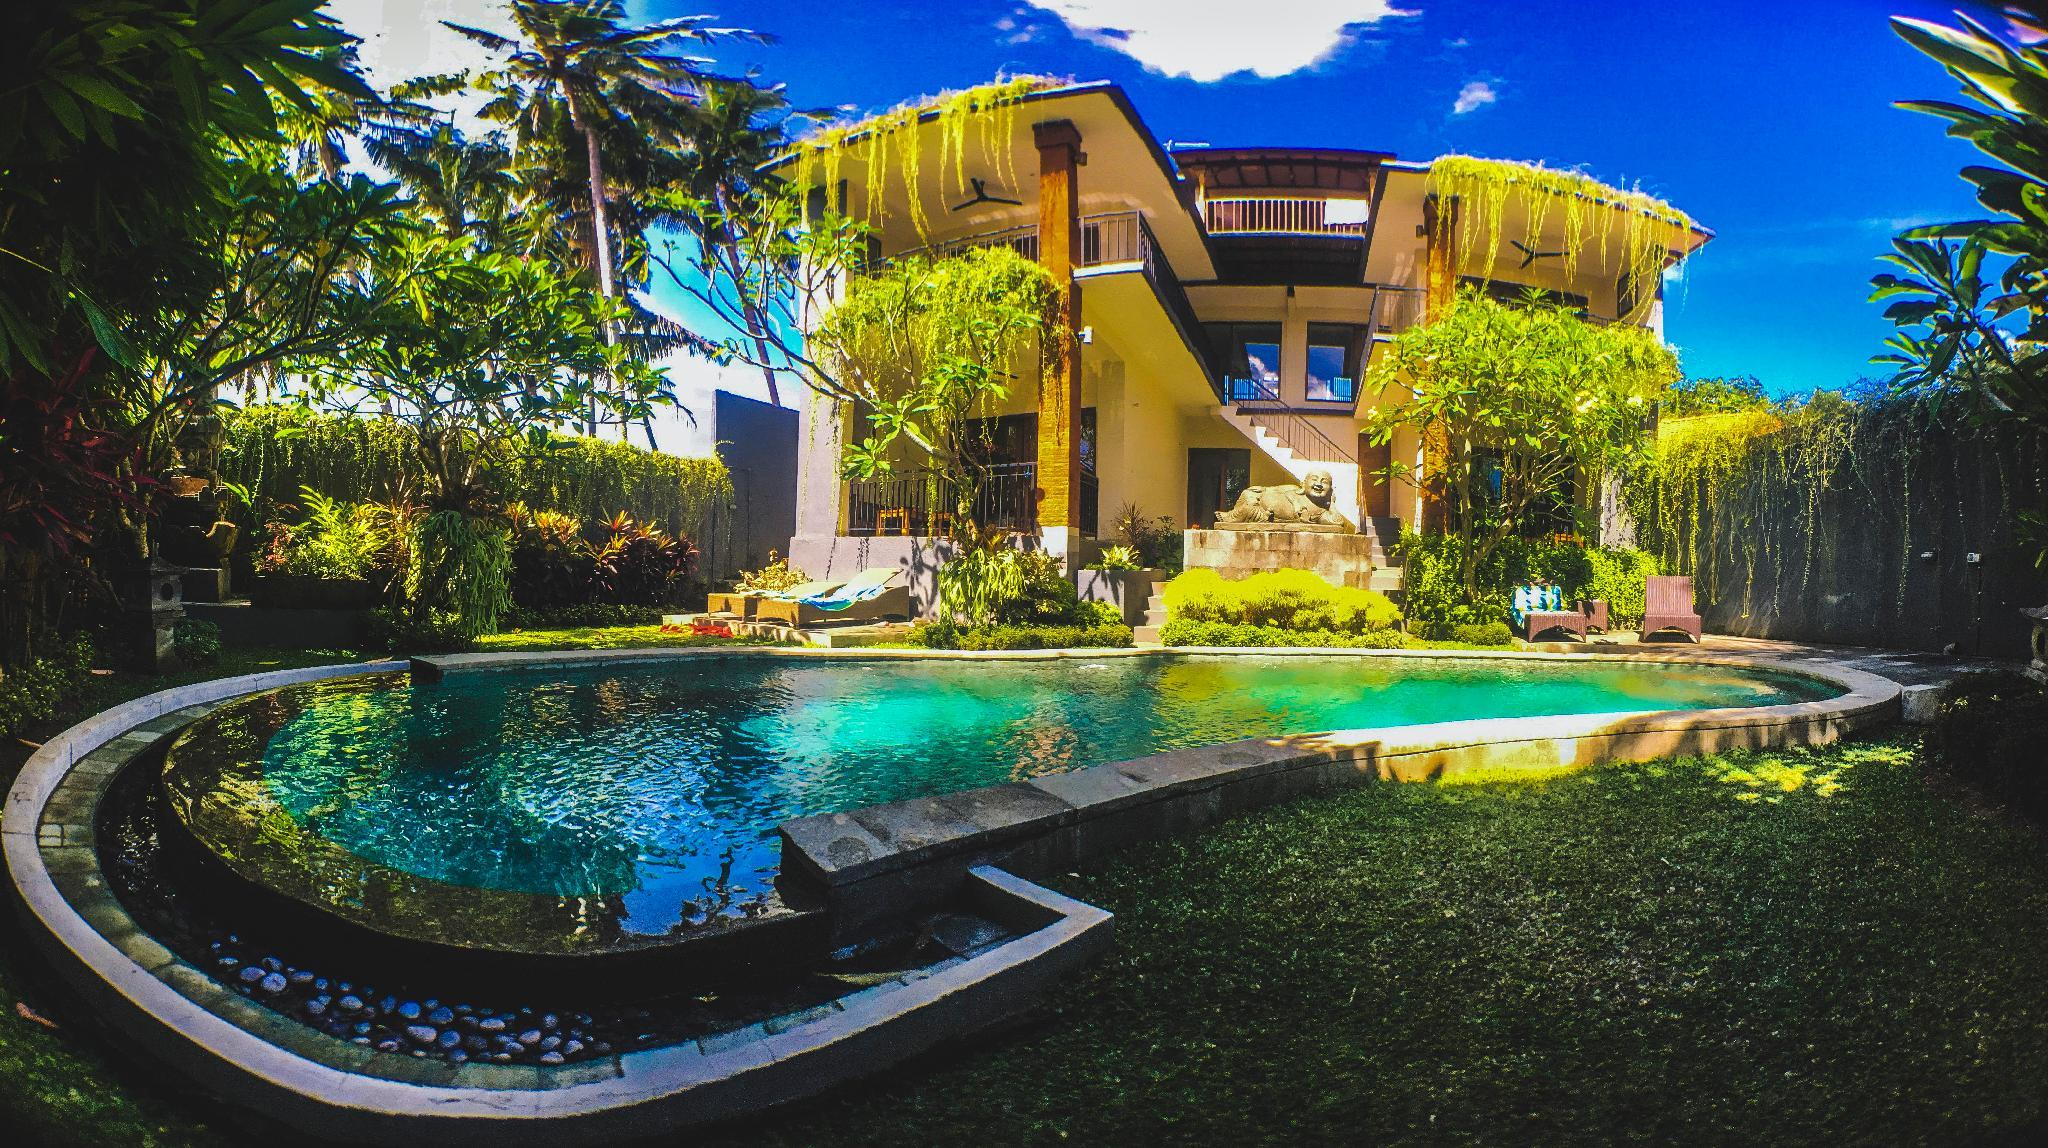 Puri Kobot - Complete List of Hotels in Bali